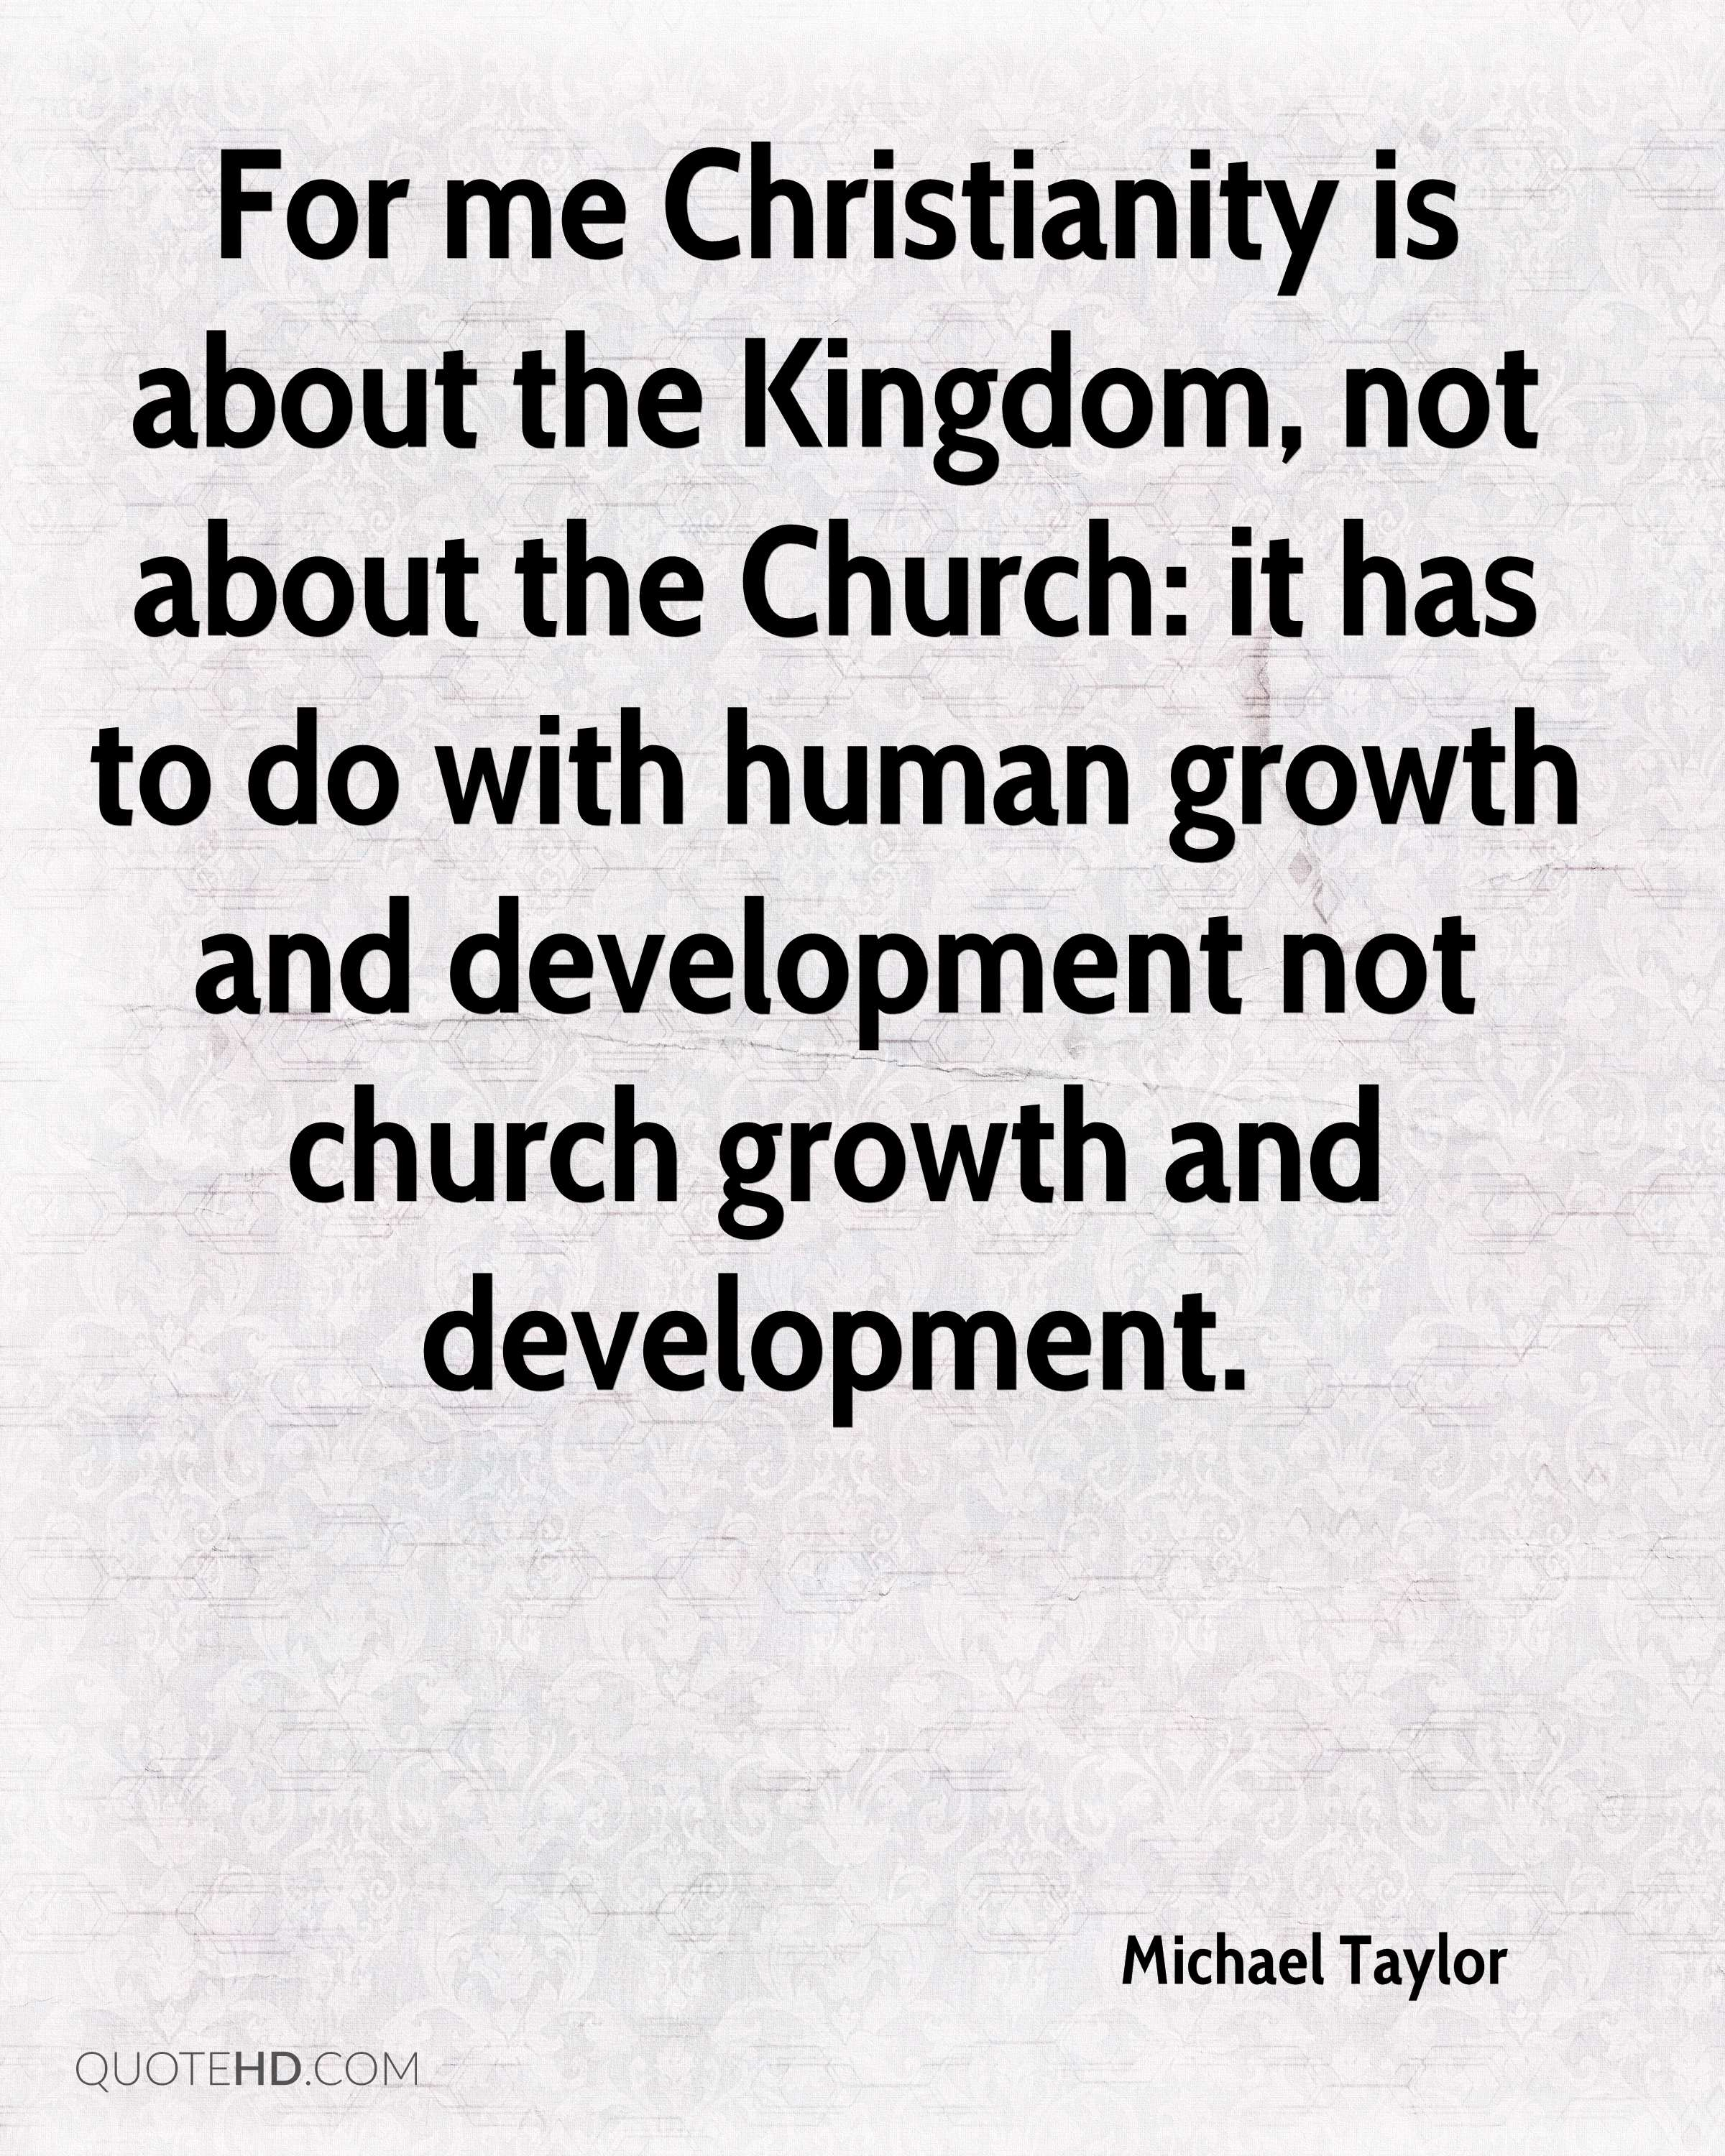 For me Christianity is about the Kingdom, not about the Church: it has to do with human growth and development not church growth and development.